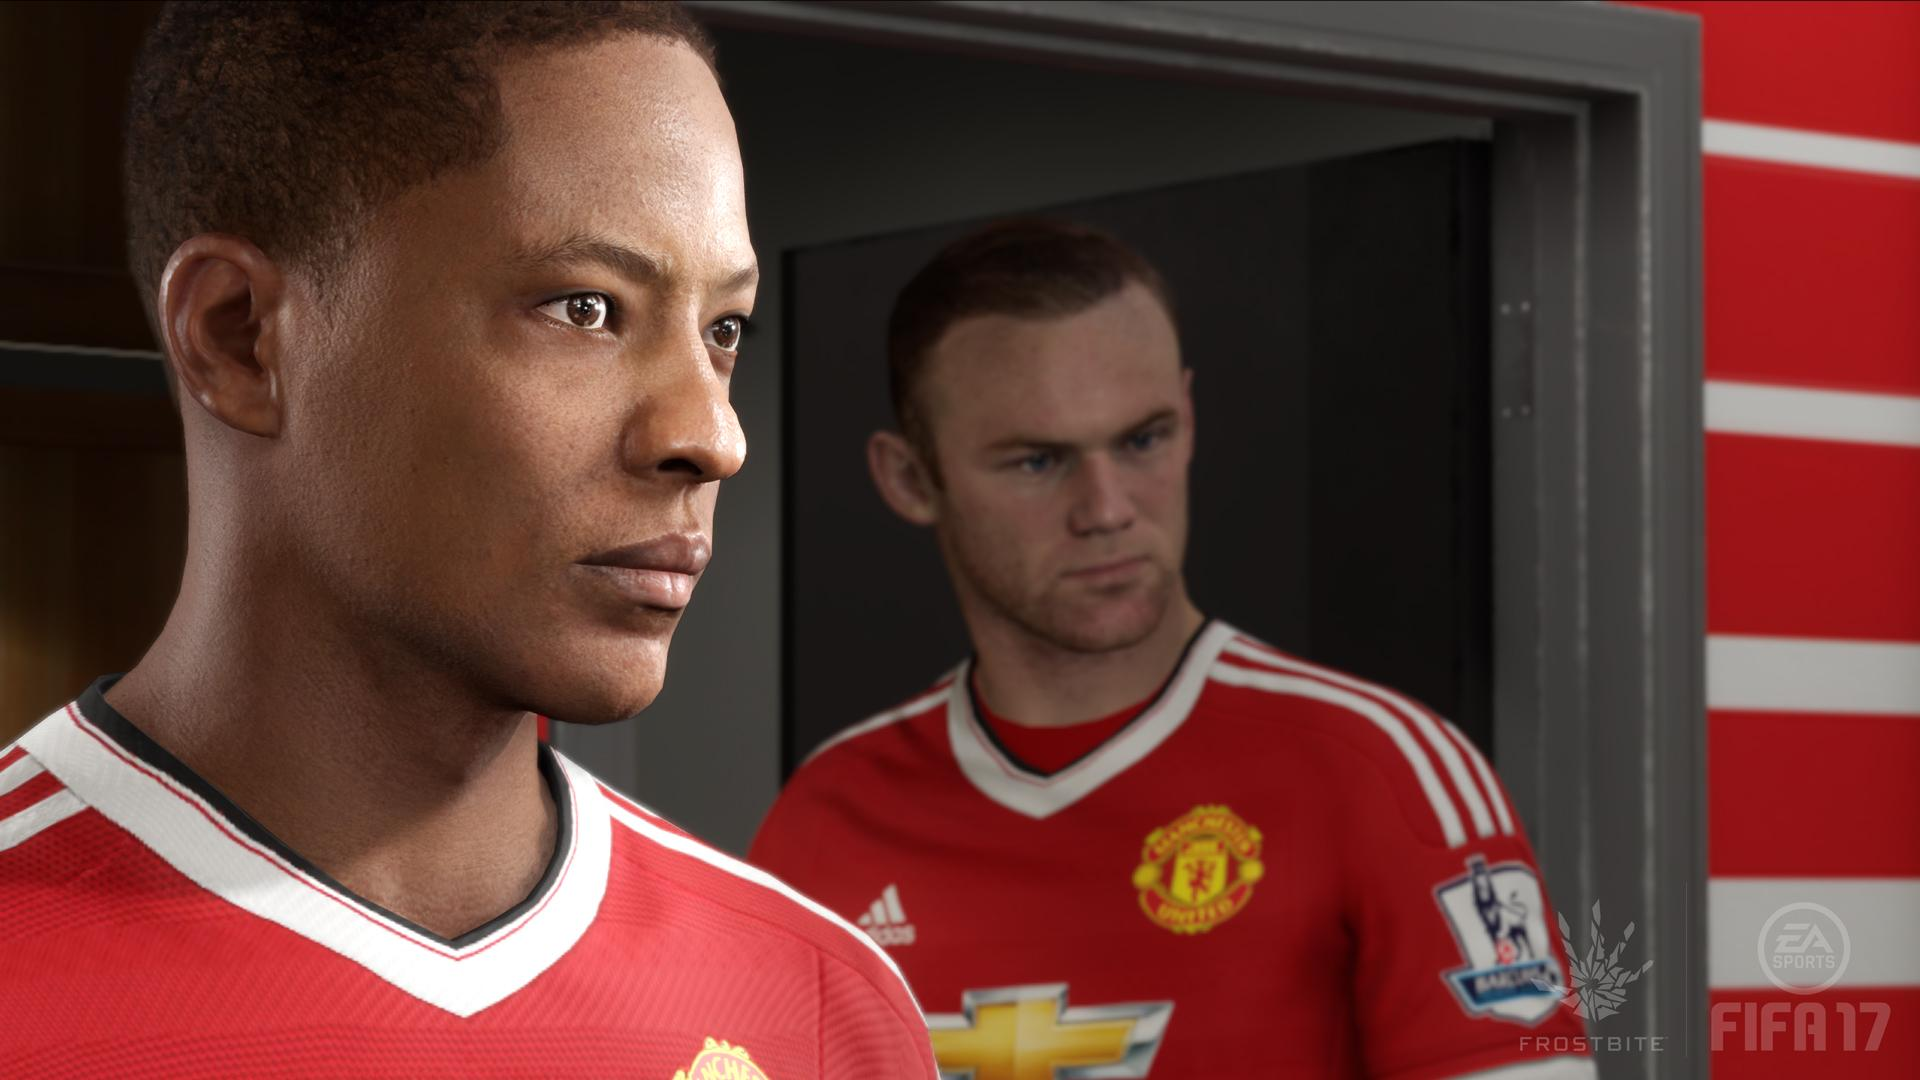 Image result for fifa 17 1920x1080 screenshot